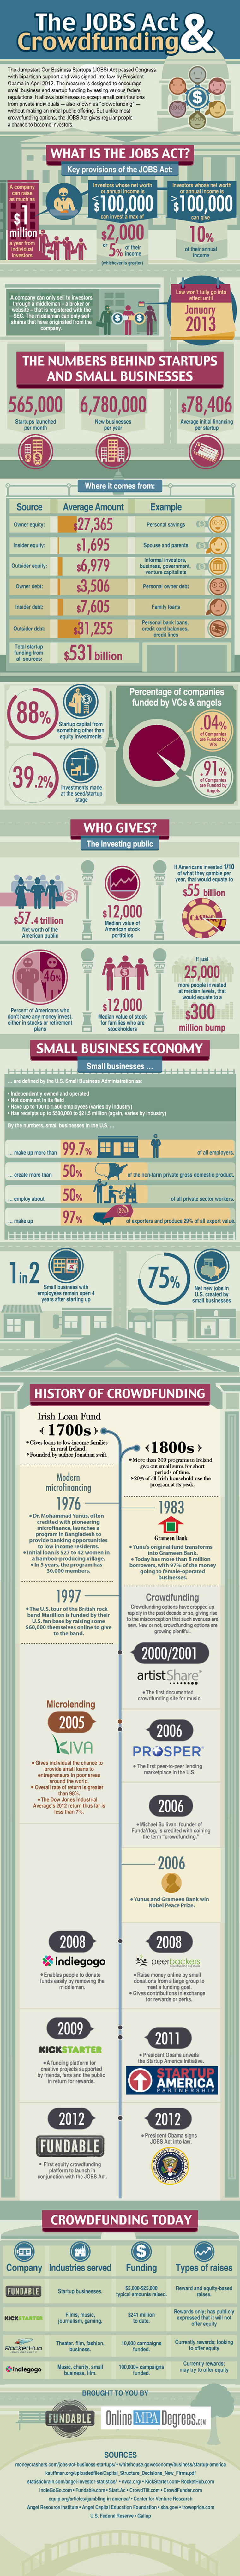 The JOBS Act and Crowdfunding